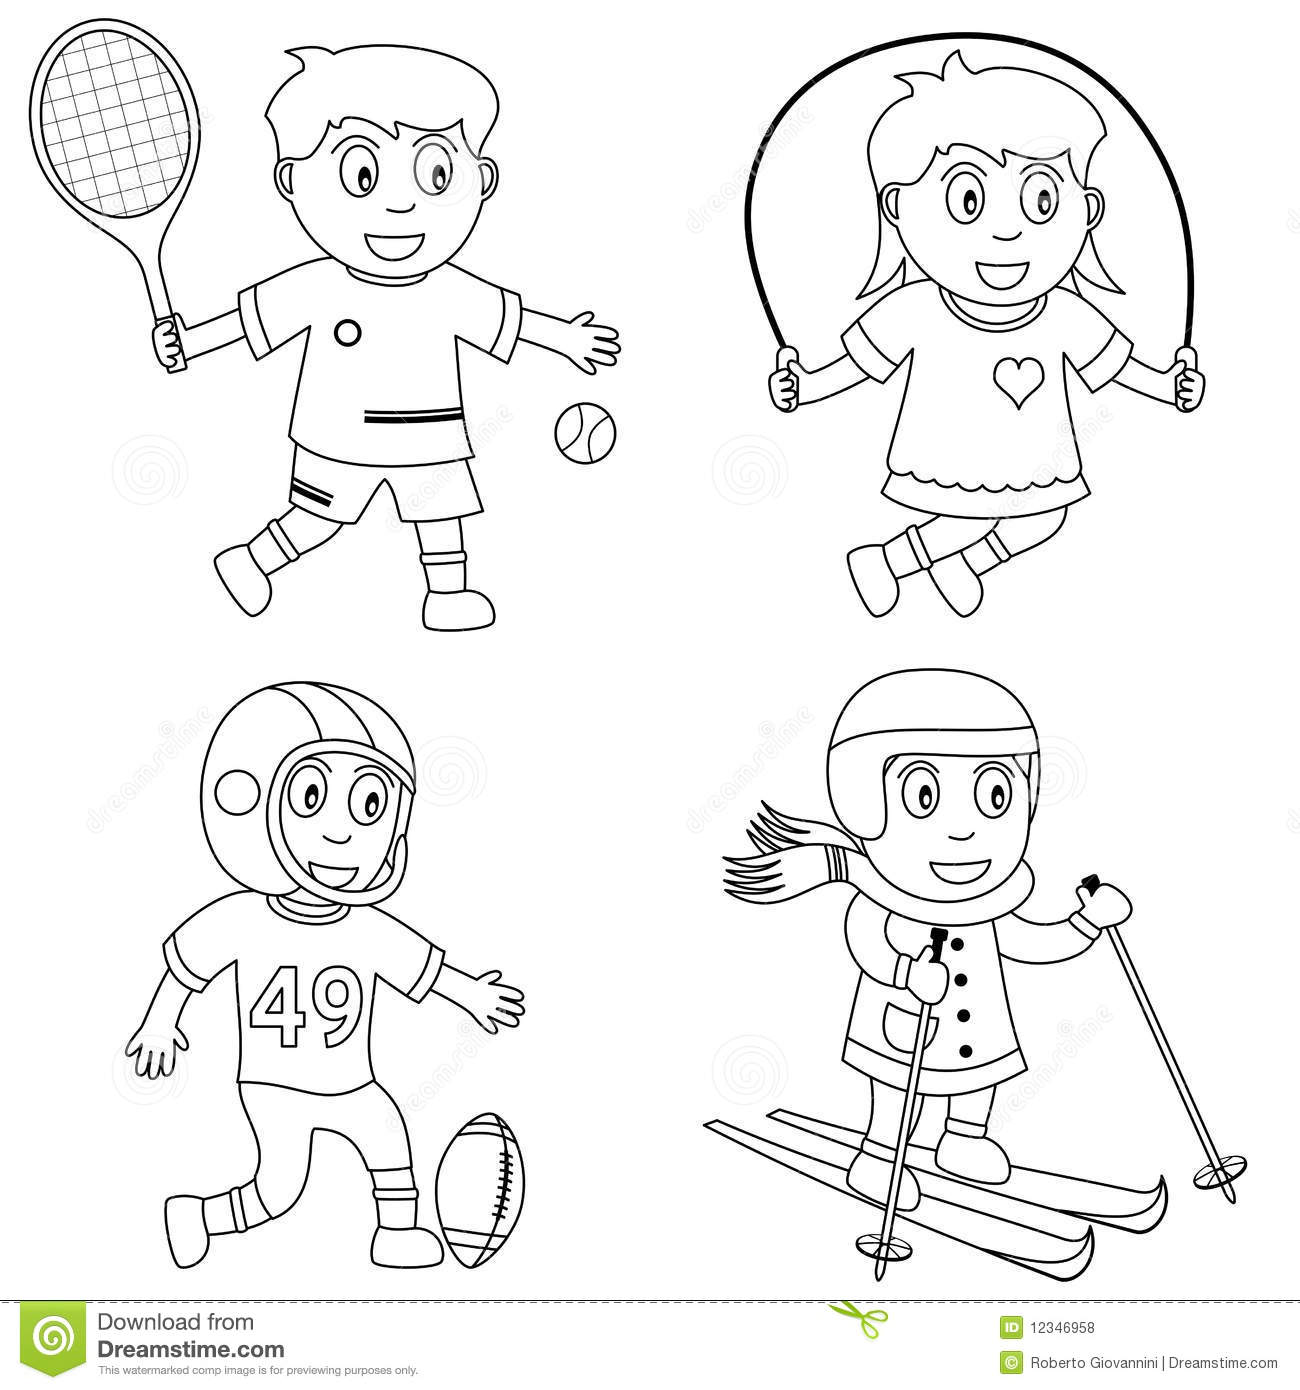 Coloring Sport For Kids [3] Stock Vector - Illustration of ...